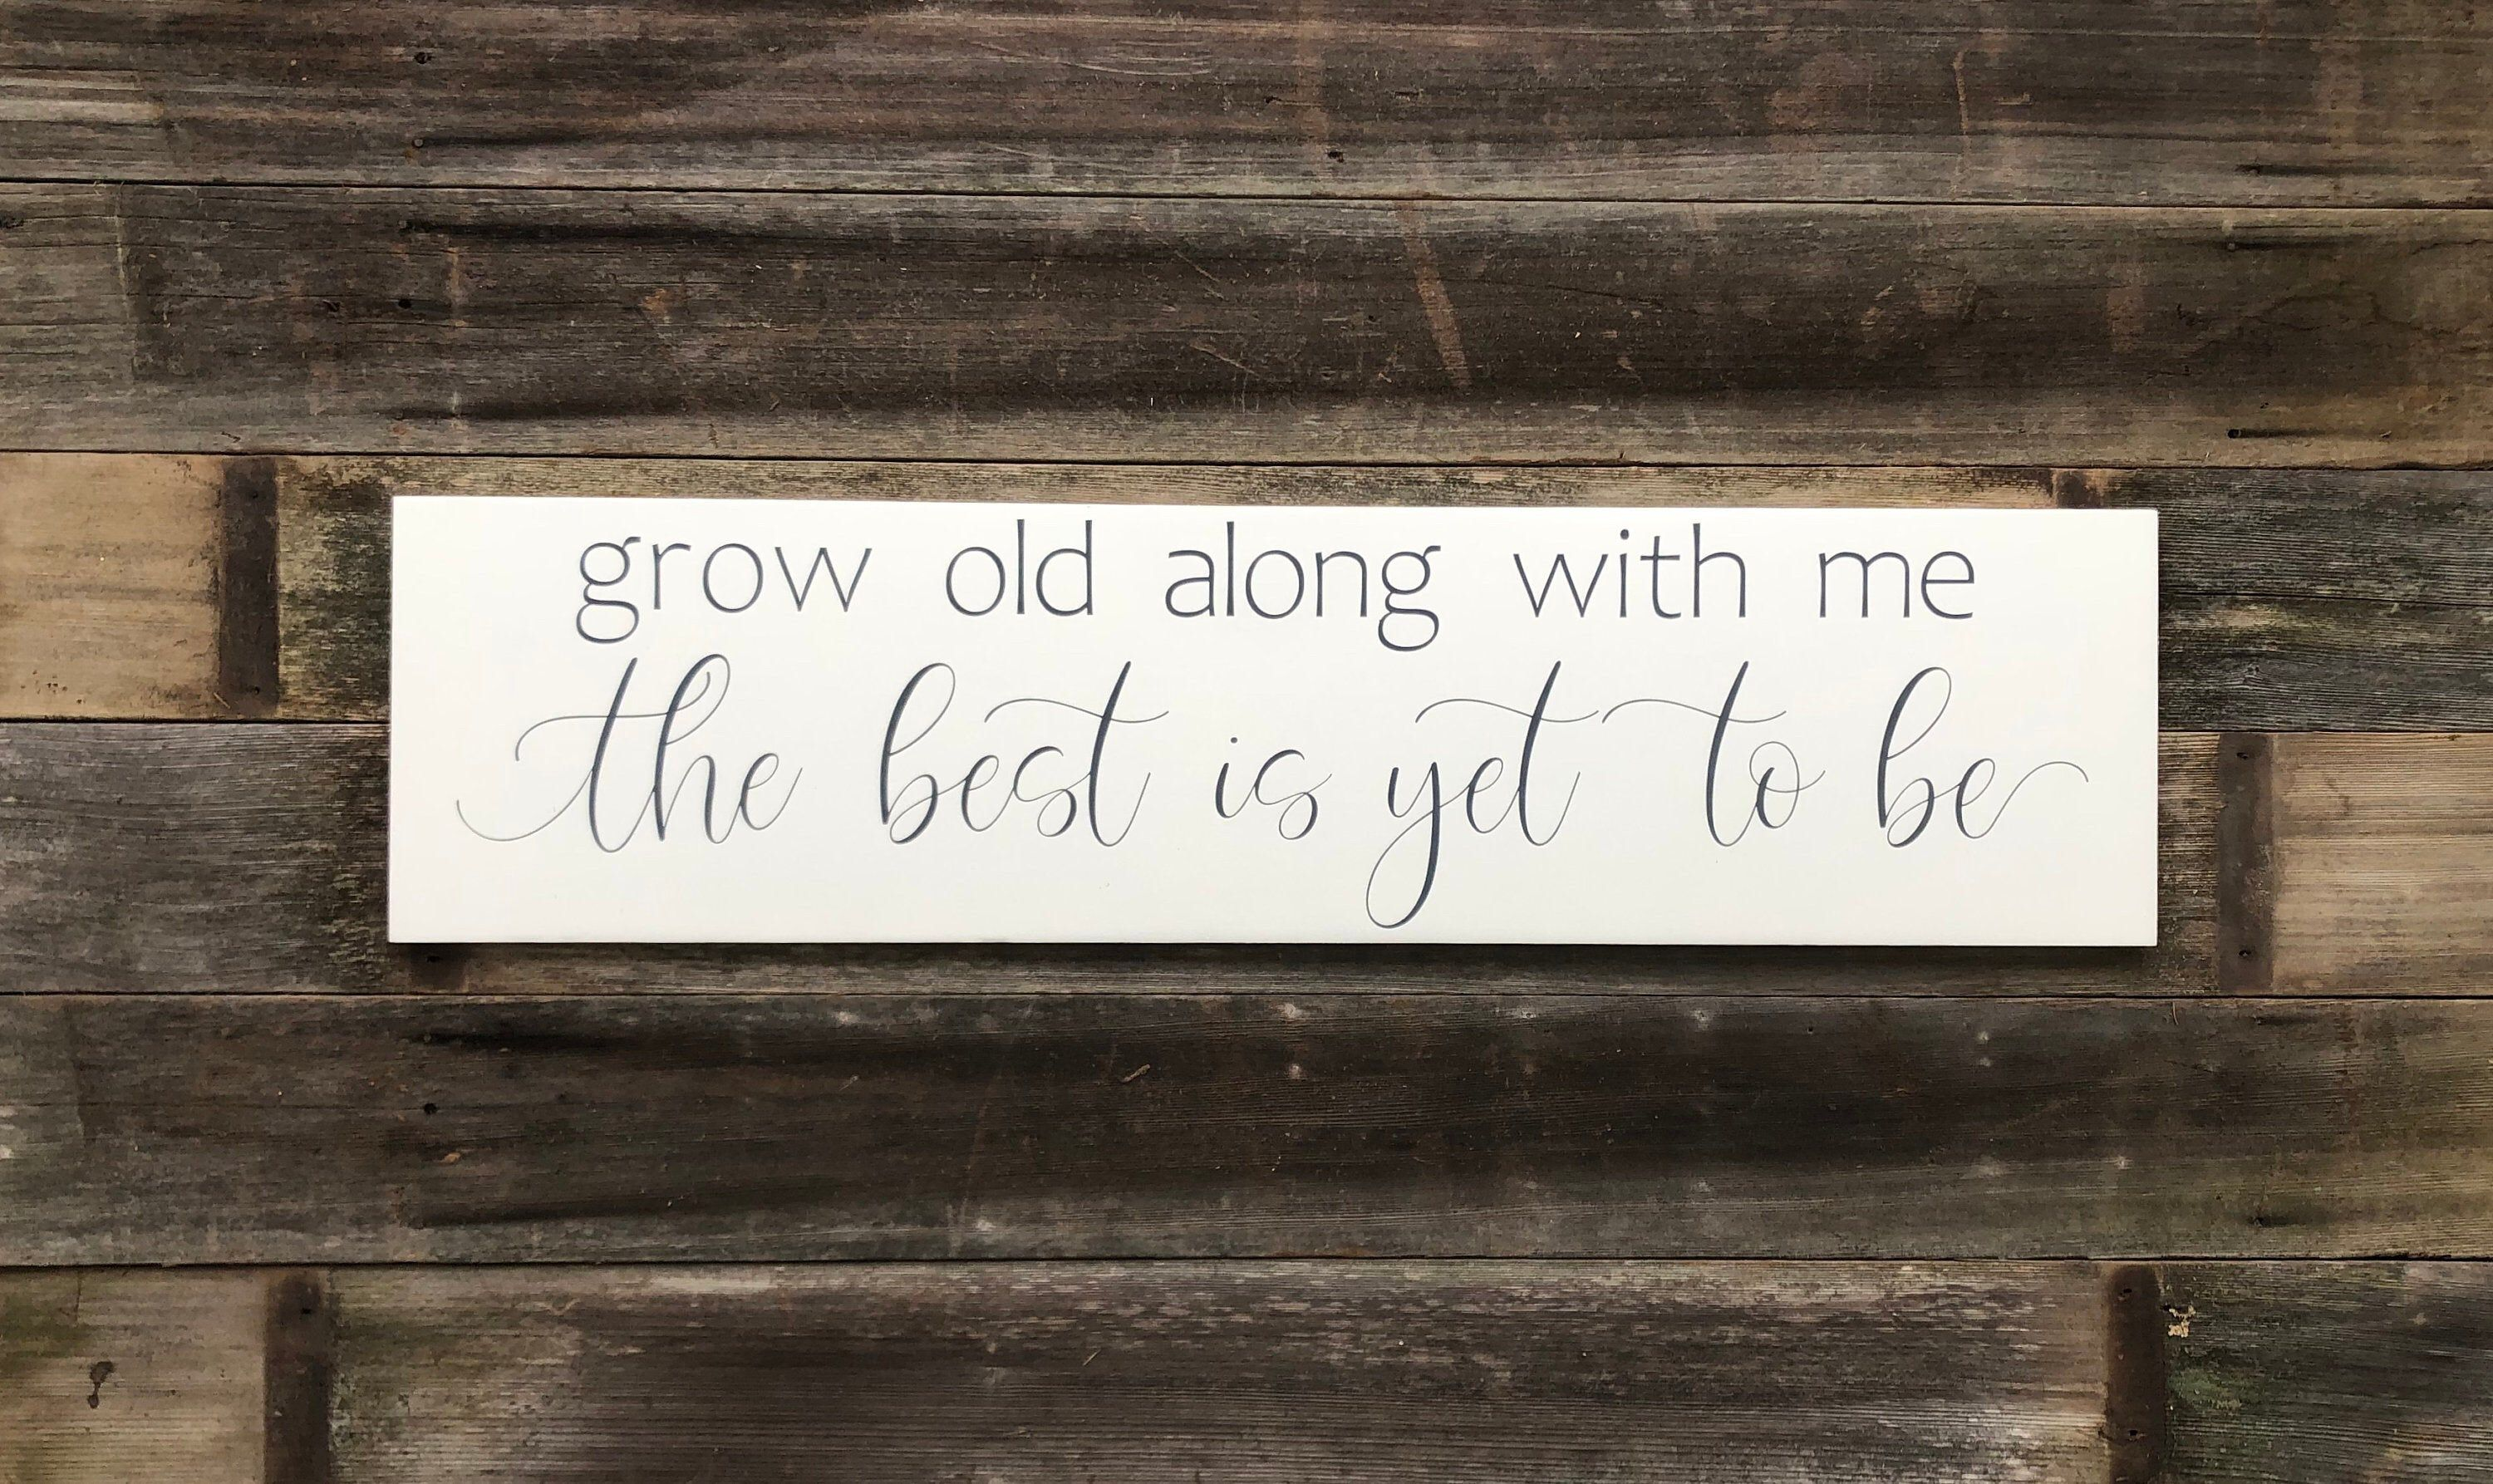 Grow old along with me the best is yet to be-wooden sign-grow old with me sign-handpainted sign